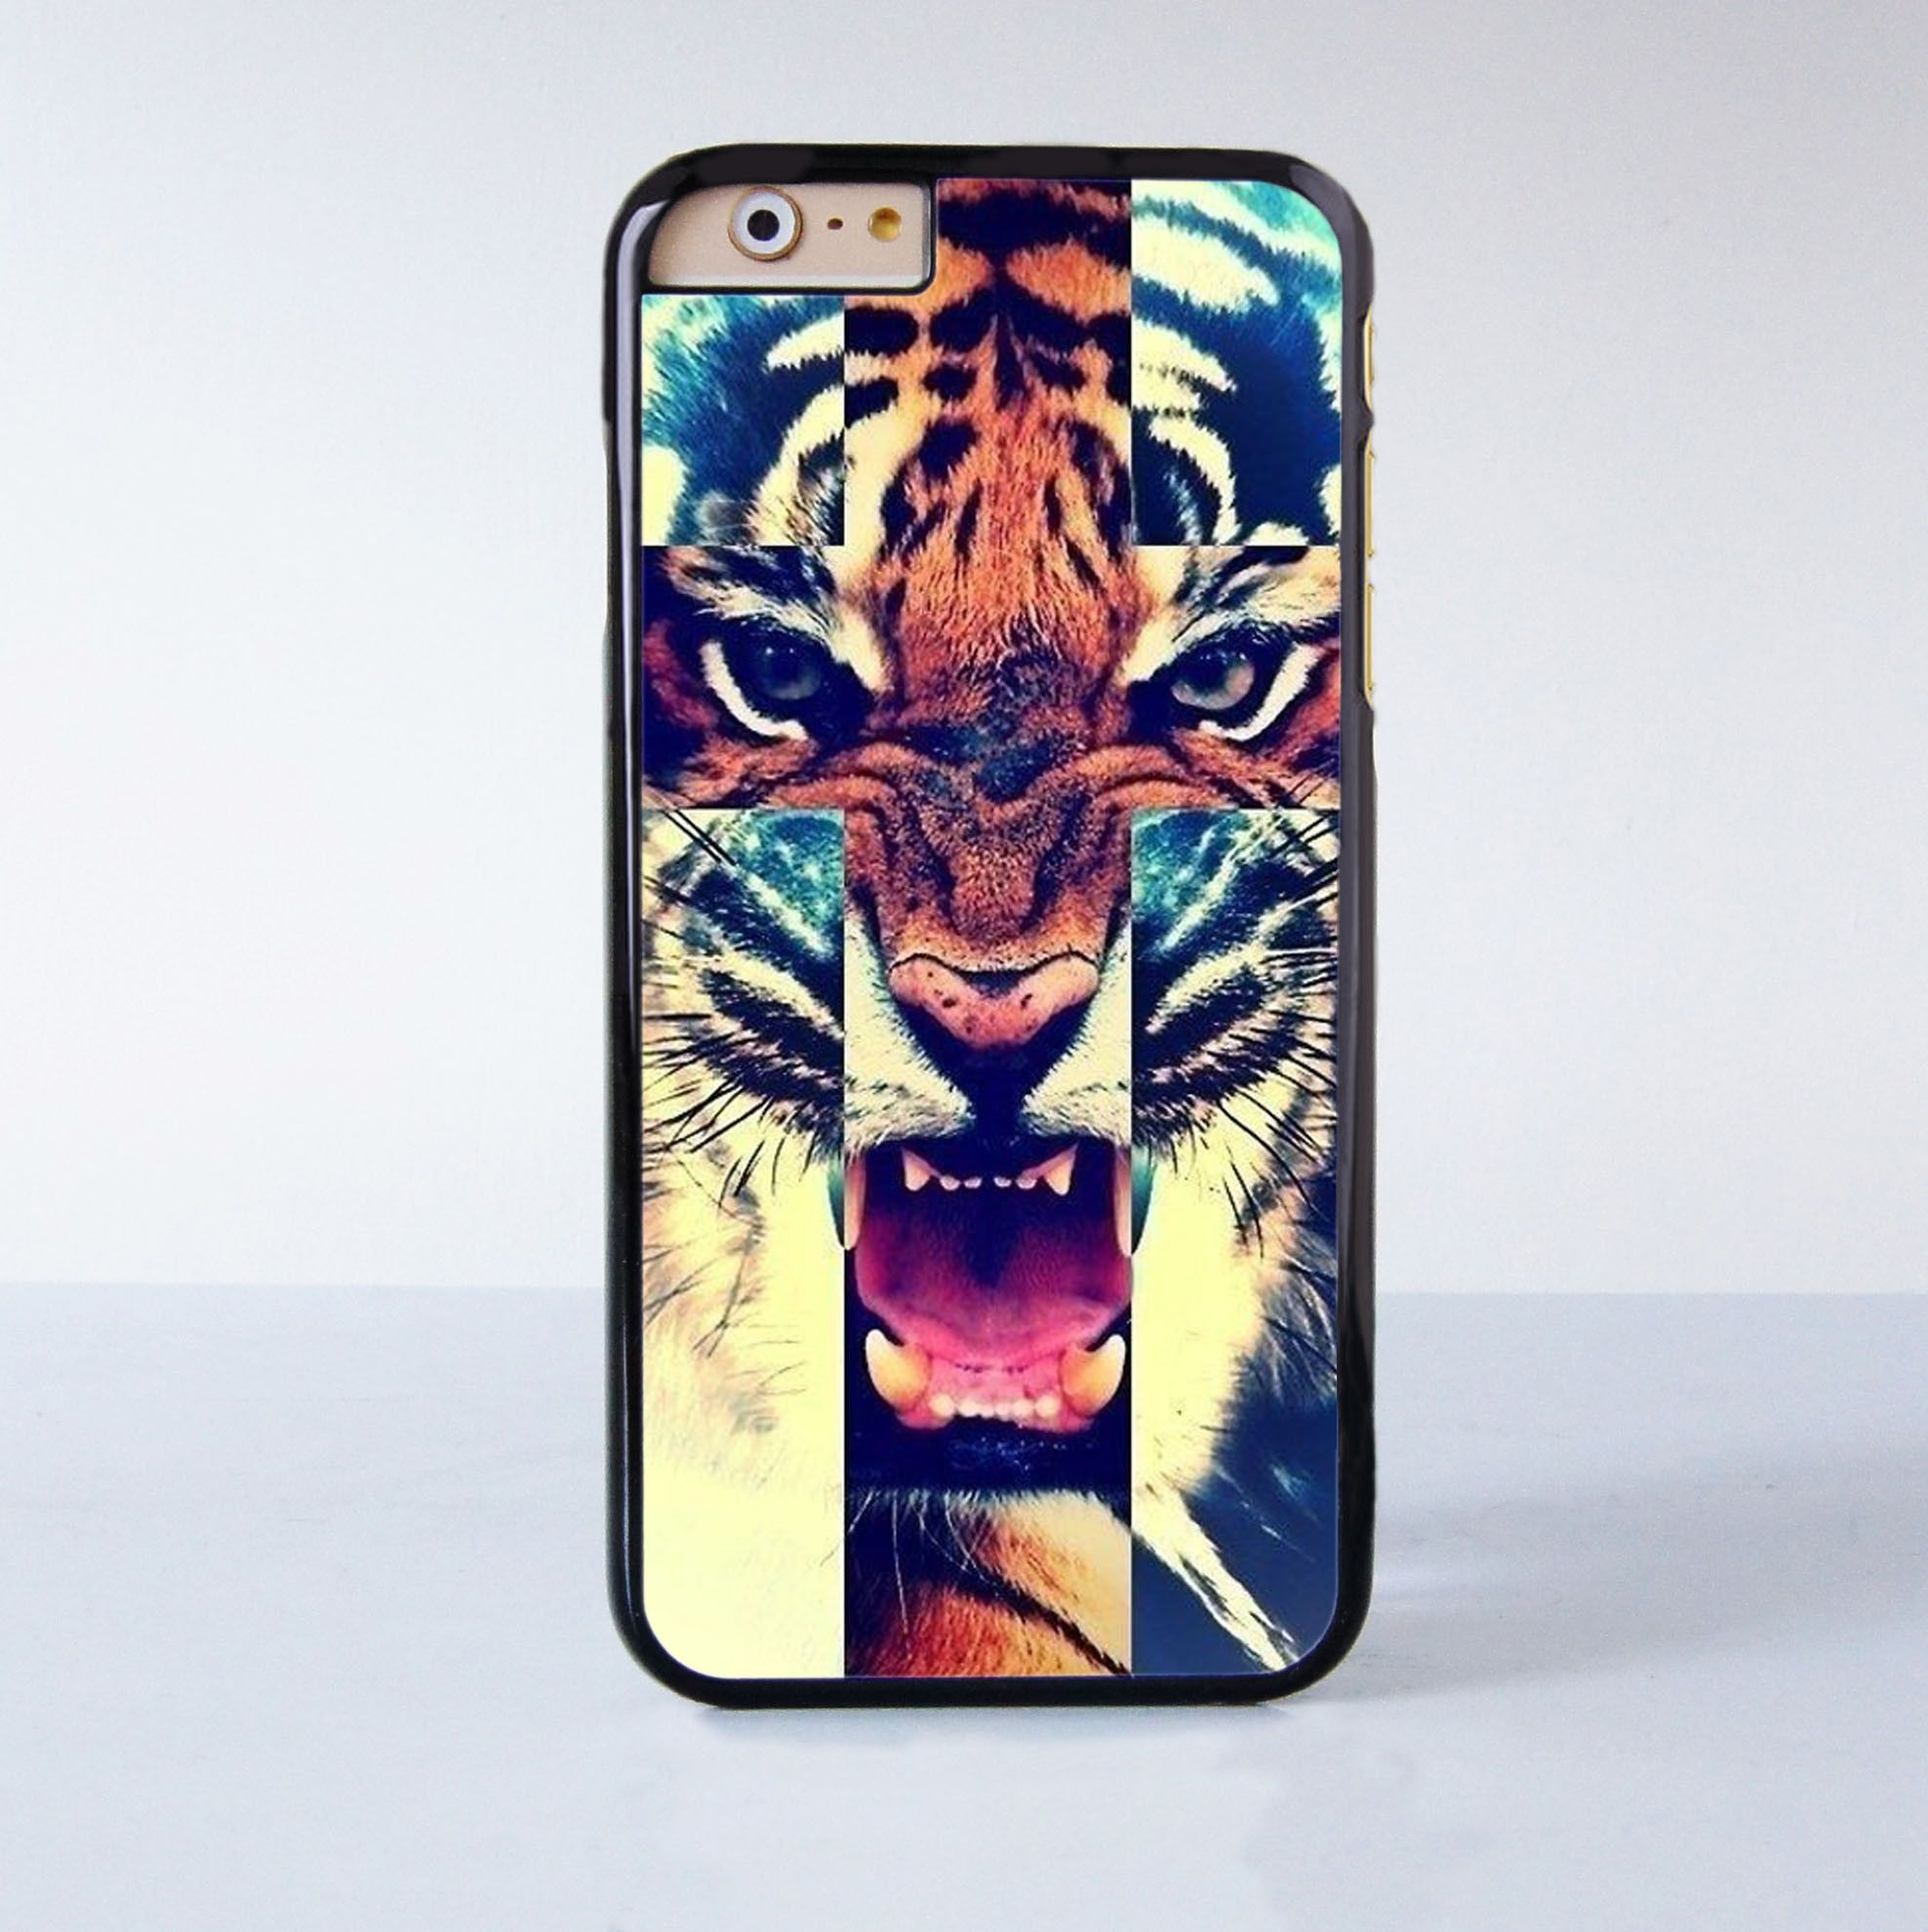 Tiger Plastic Phone Case For iPhone 6 More Style For iPhone 6/5/5s/5c/4/4s